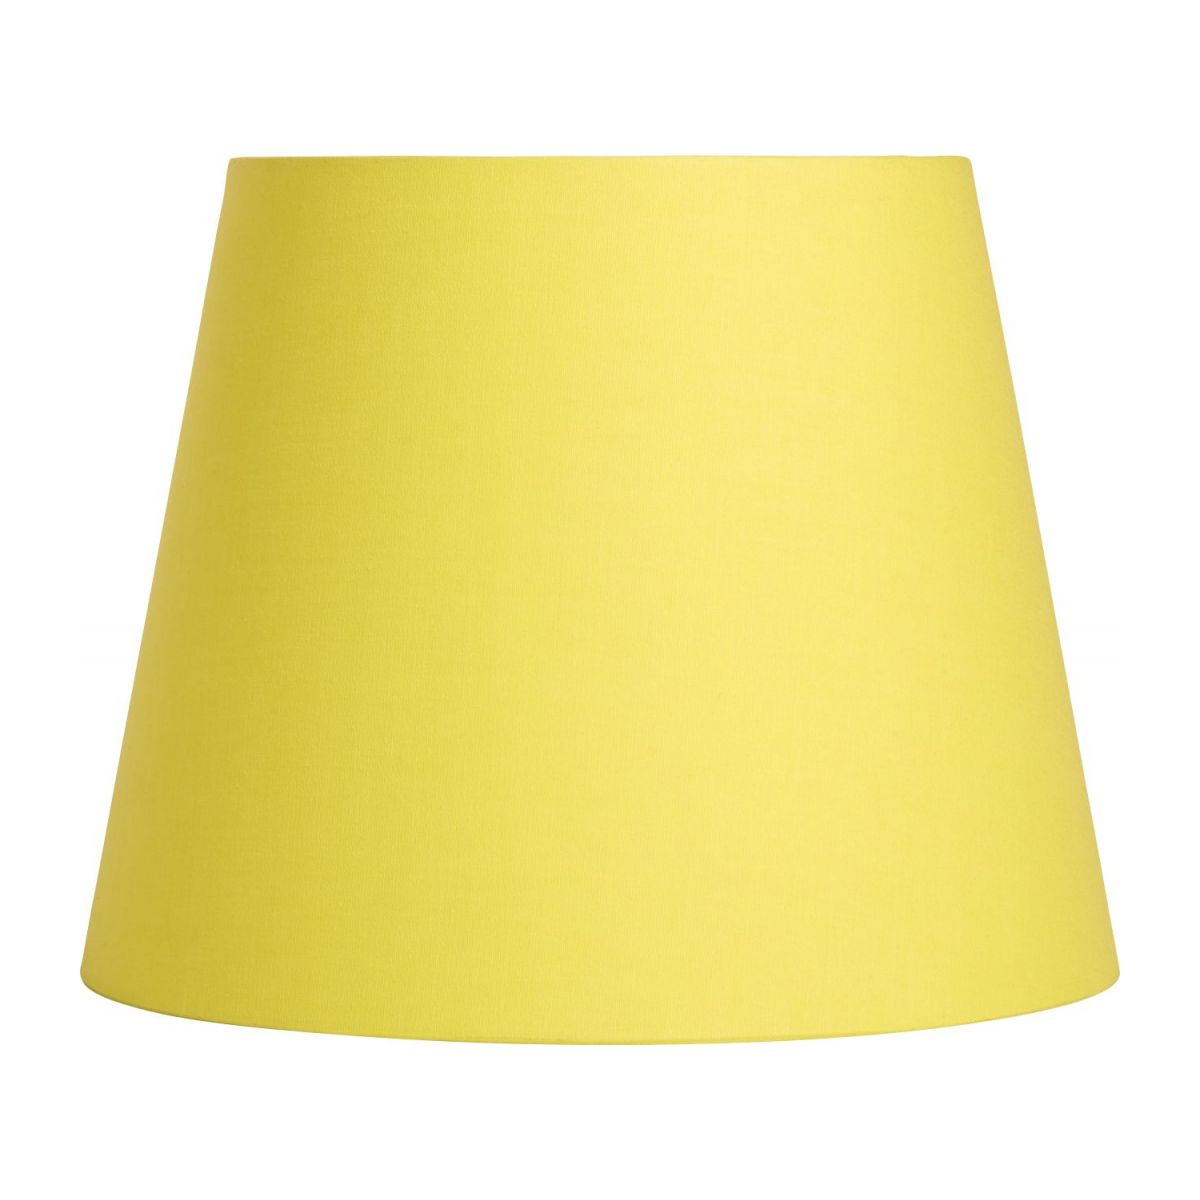 Large yellow lampshade n°2